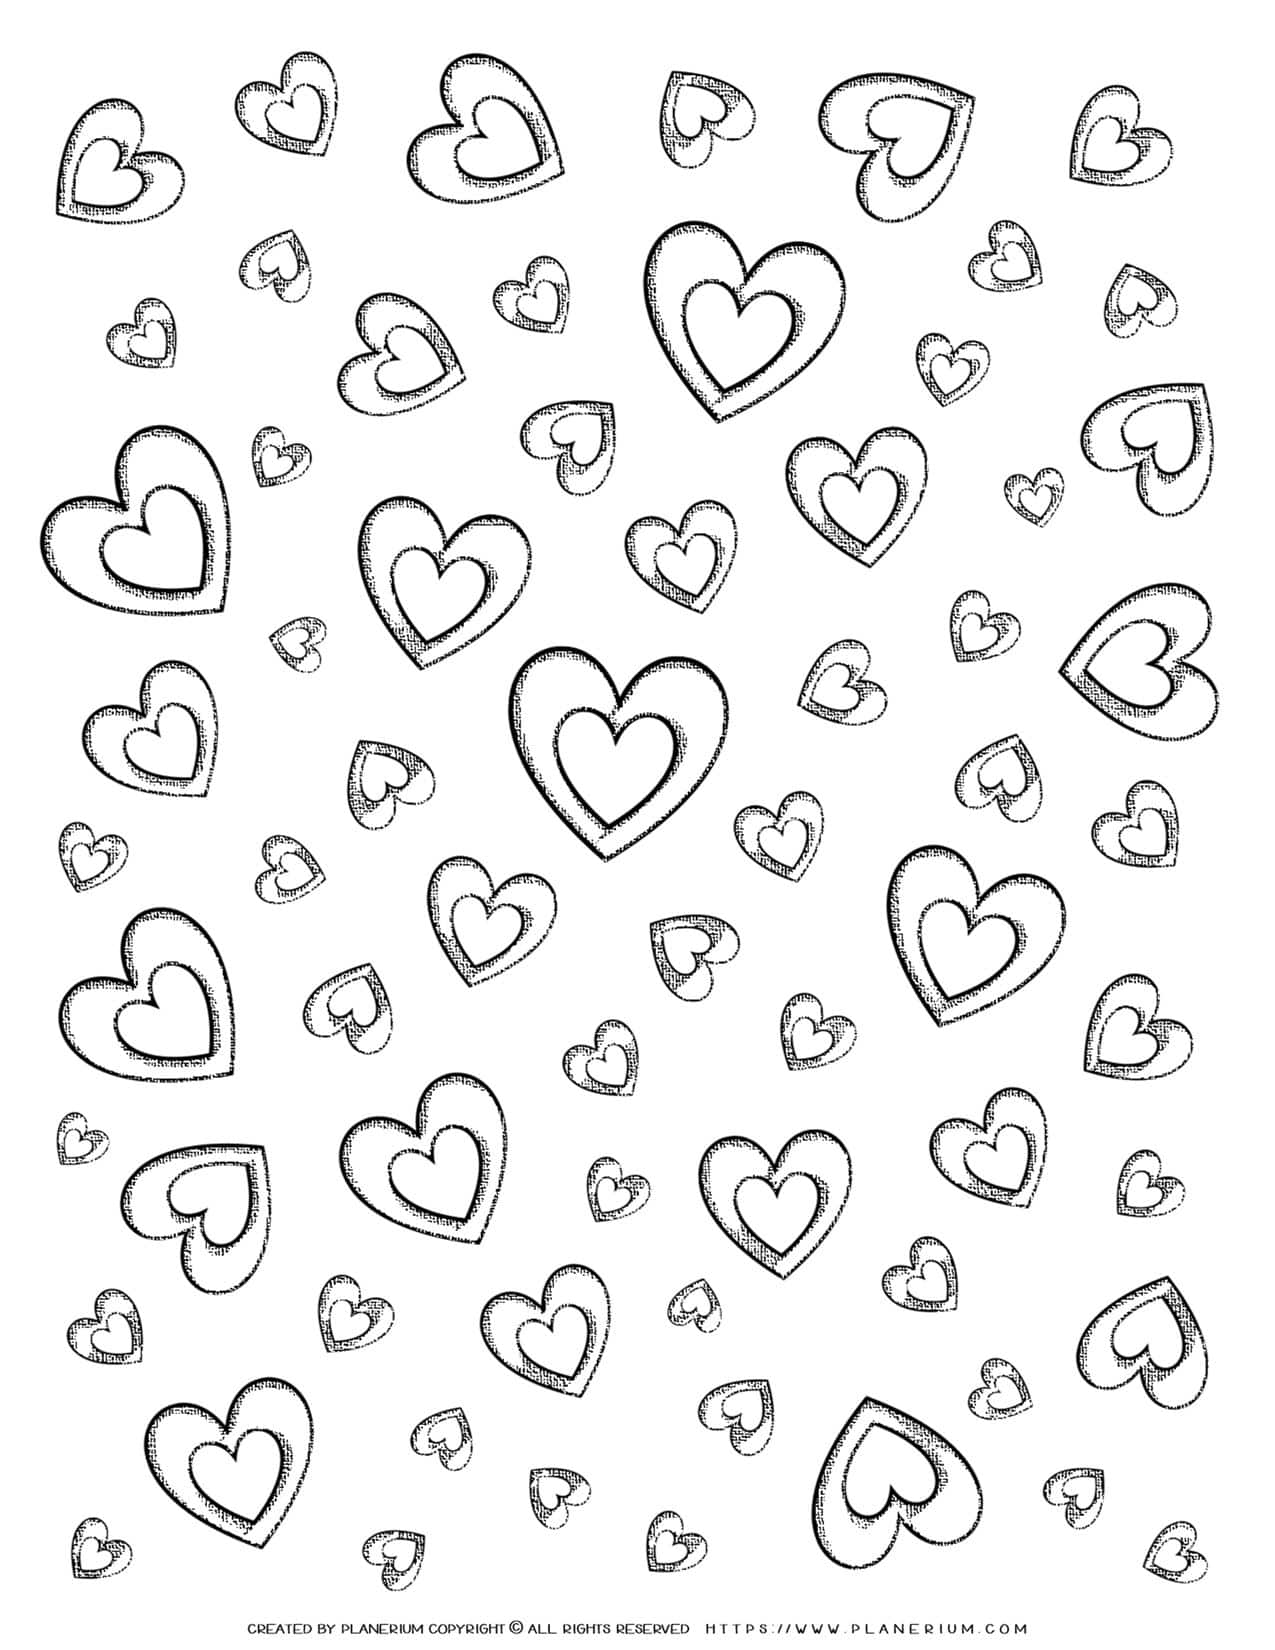 Adult Coloring Pages - Hearts | Planerium